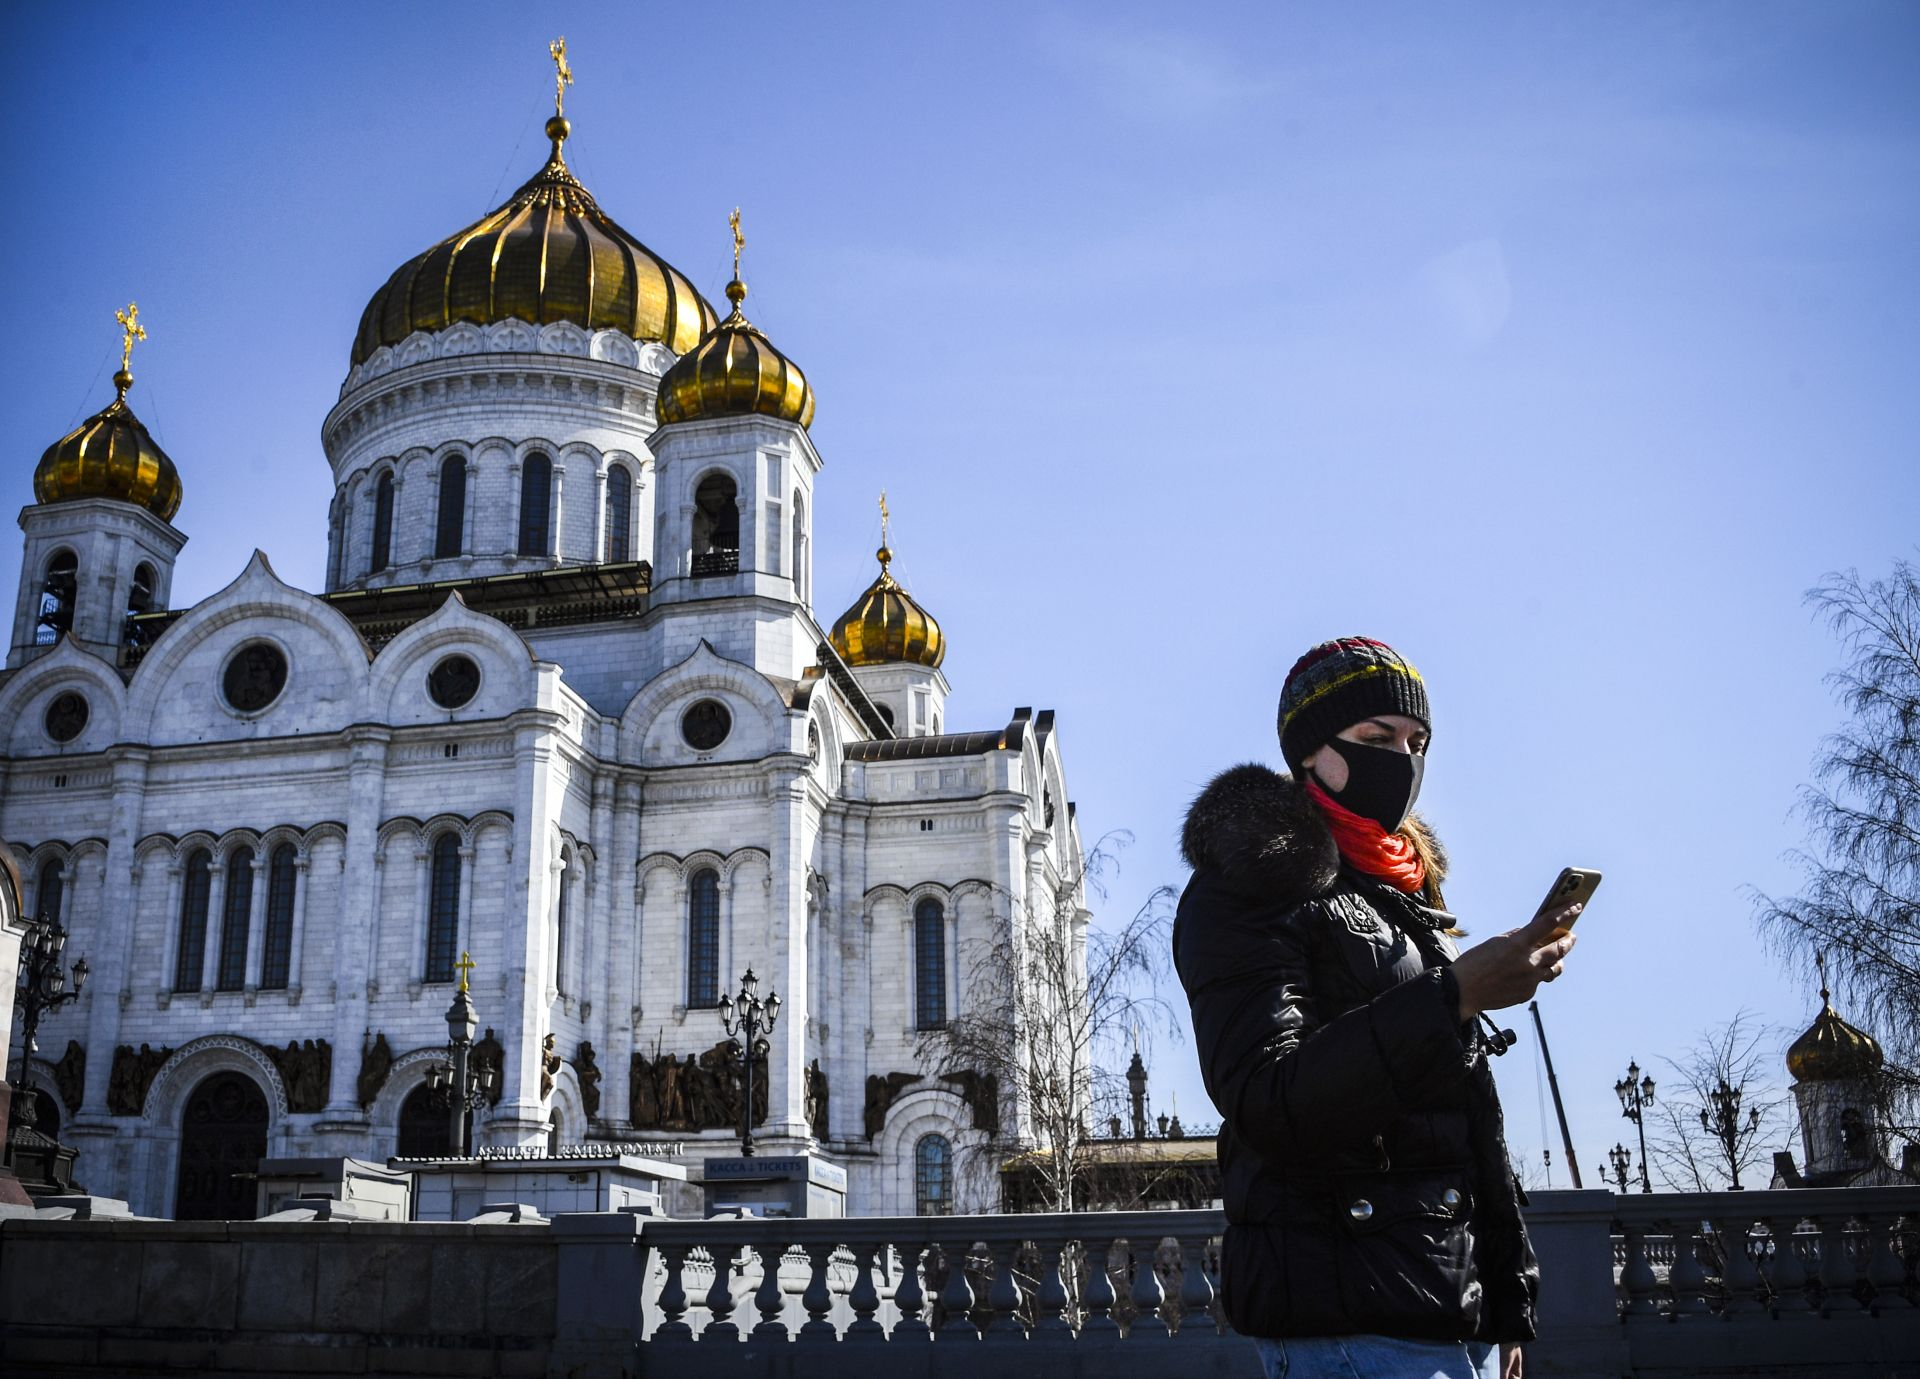 A woman wearing a face mask, amid concerns over the spread of the COVID-19 coronavirus, walks past the Cathedral of Christ the Saviour in downtown Moscow on March 26, 2020. (Photo by Alexander NEMENOV / AFP)